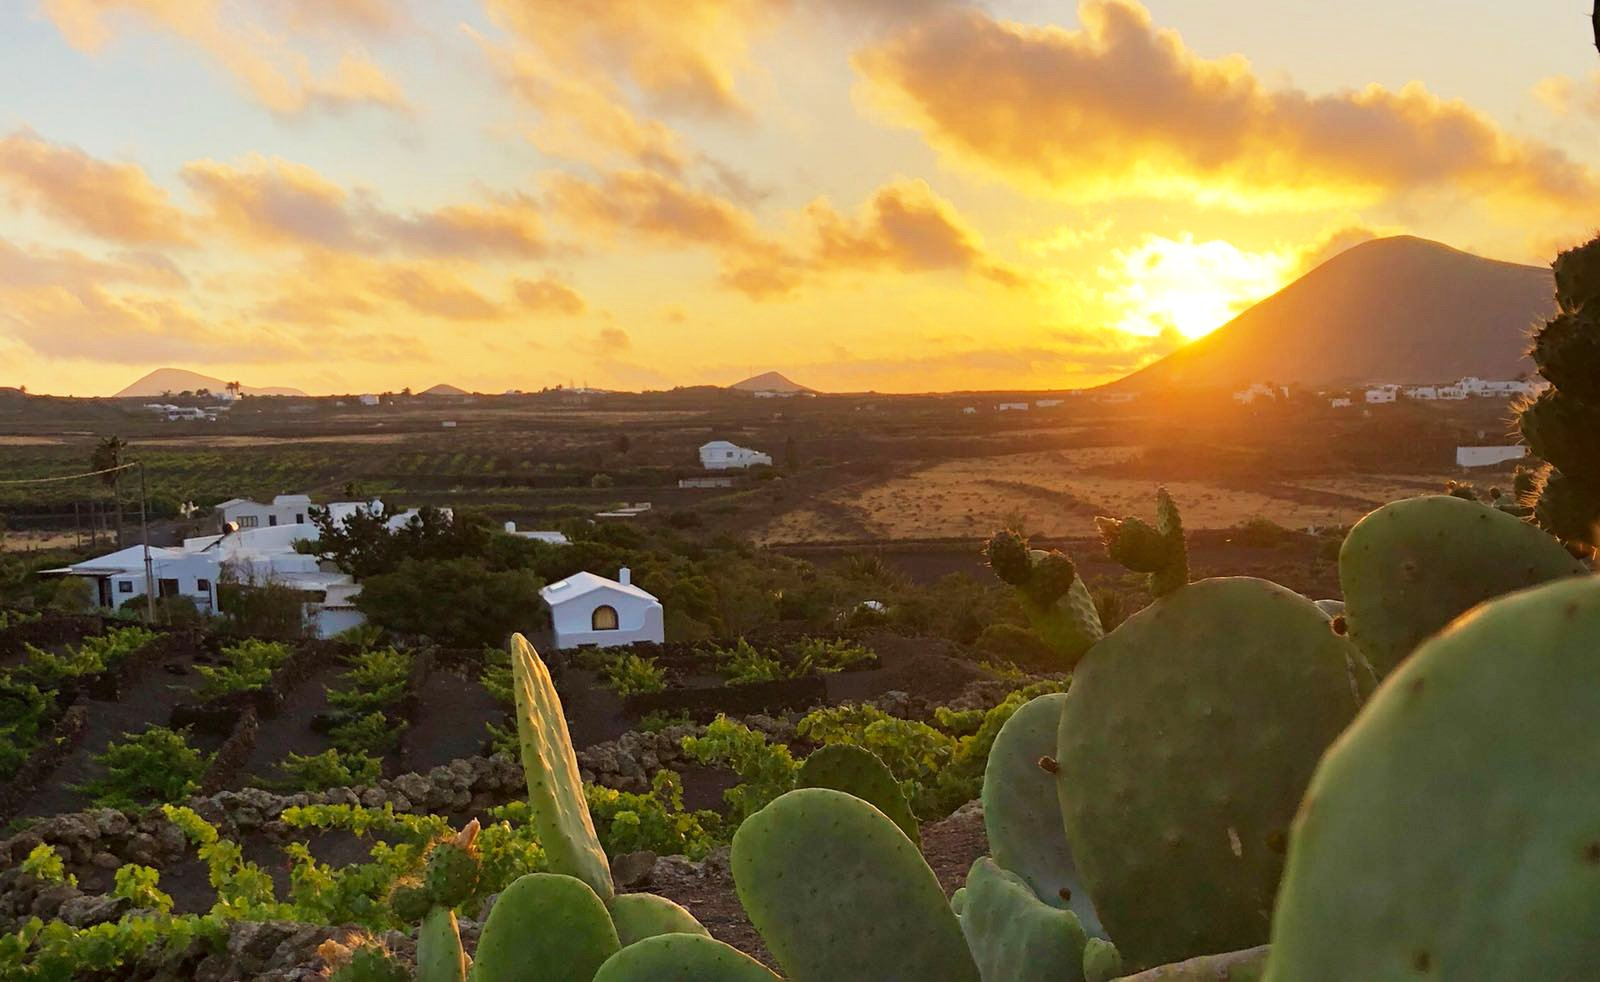 Amatista Retreat Center in the Canary Islands